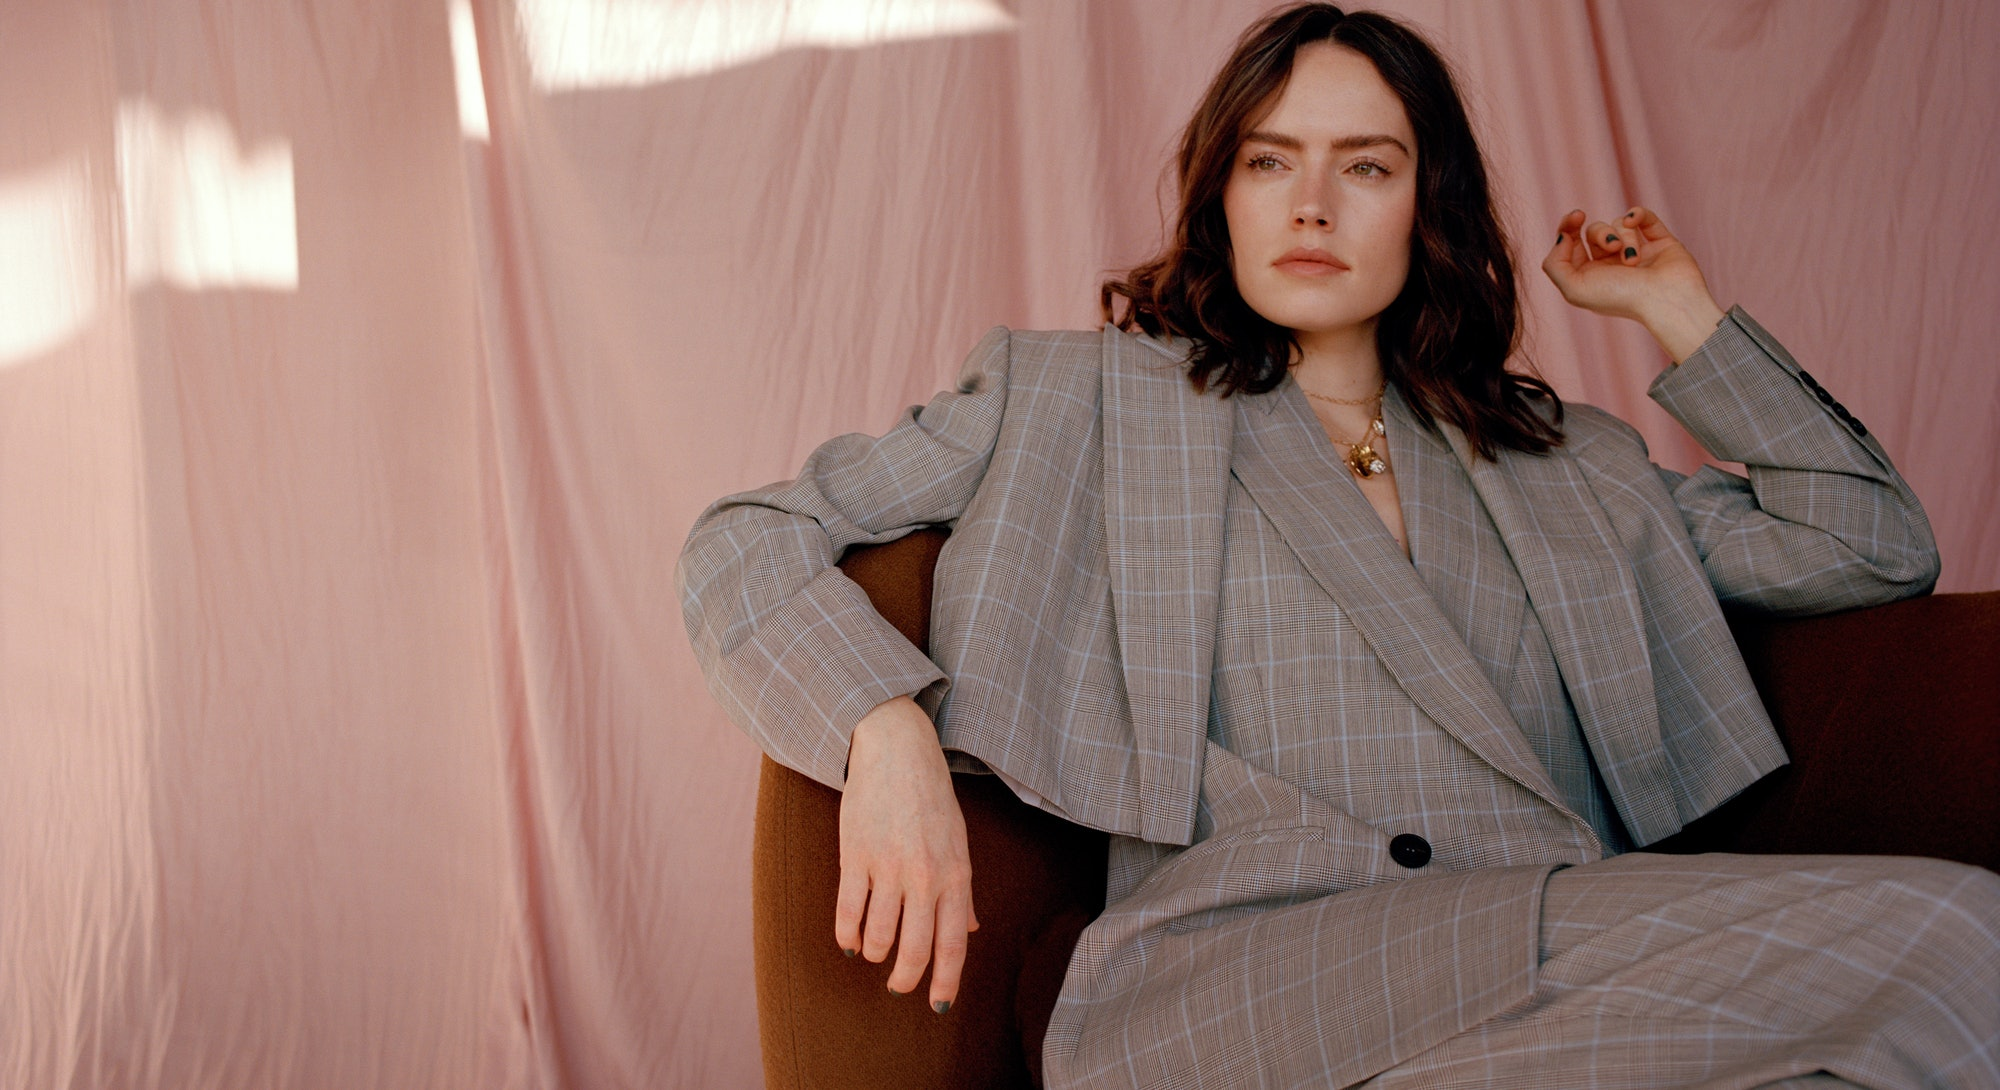 Daisy Ridley appears on the cover of TZR's spring 2021 issue wearing a gray Alexander McQueen suit.